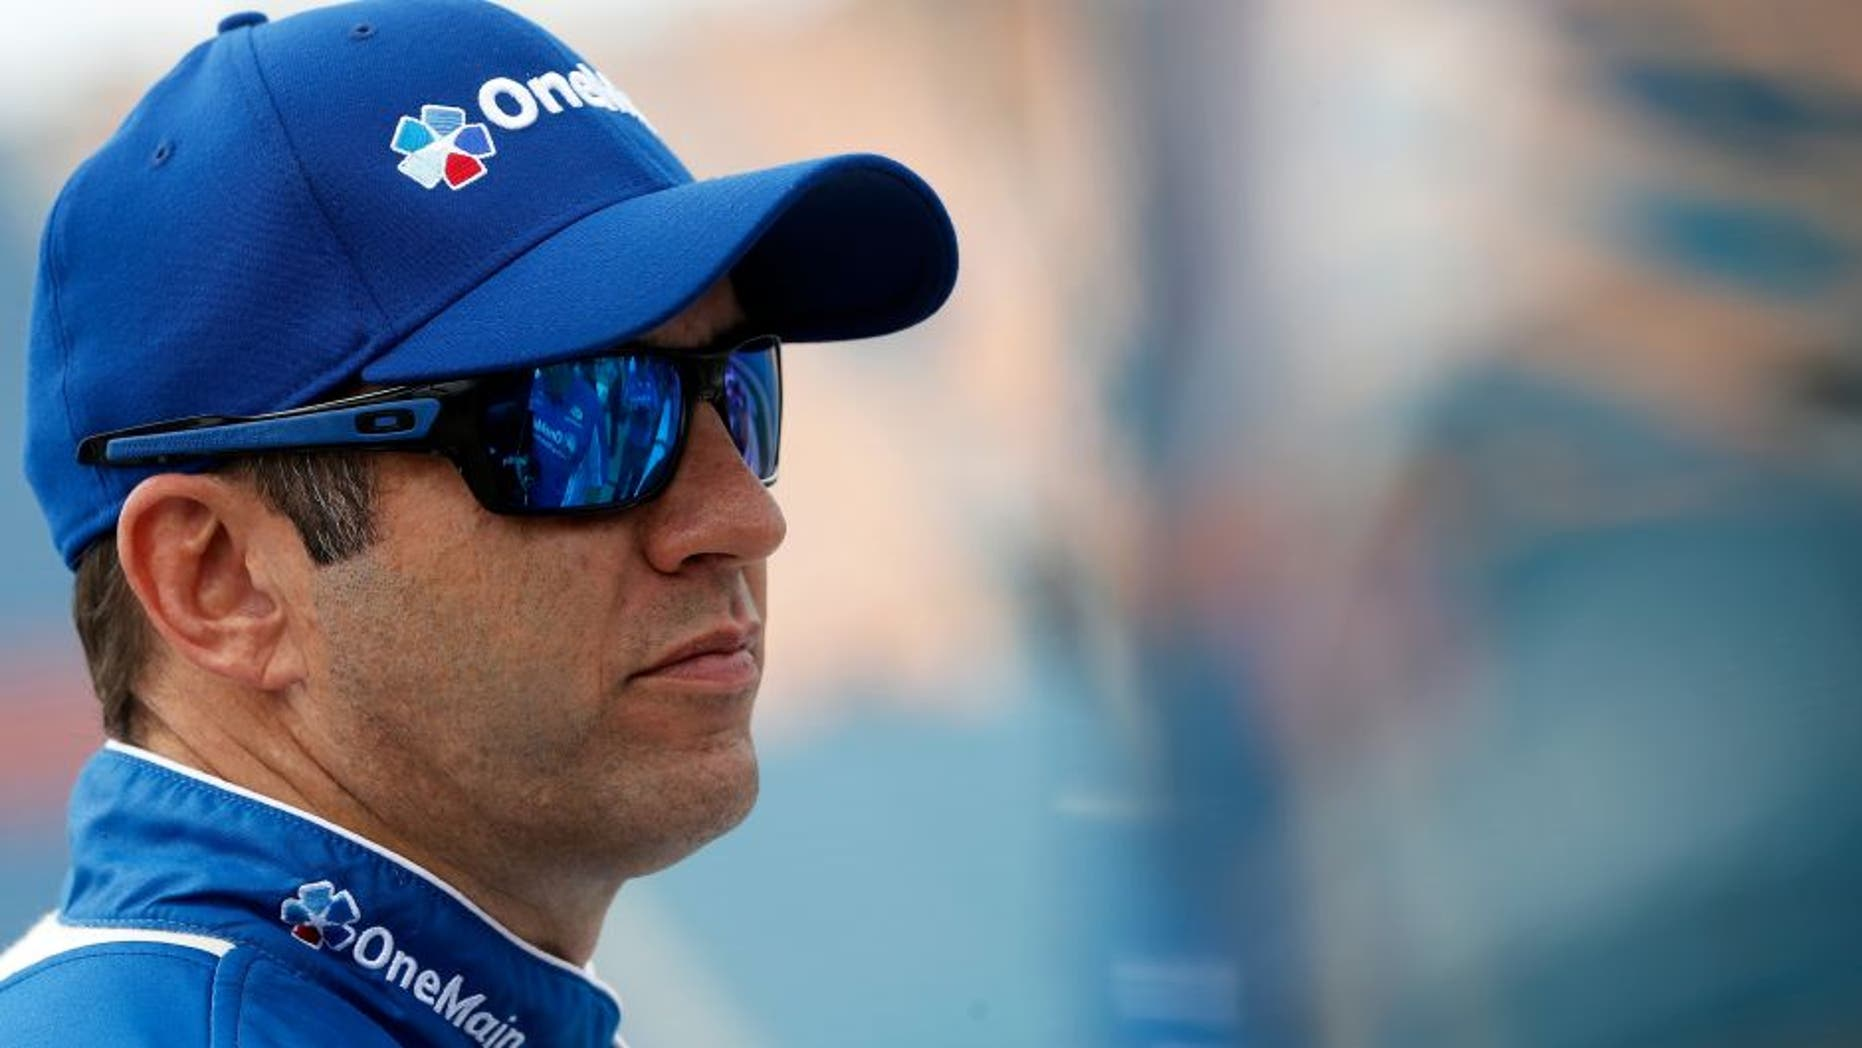 JOLIET, IL - SEPTEMBER 17: Elliott Sadler, driver of the #1 OneMain Chevrolet, stands on the grid during qualifying for the NASCAR XFINITY Series Drive for Safety 300 at Chicagoland Speedway on September 17, 2016 in Joliet, Illinois. (Photo by Brian Lawdermilk/NASCAR via Getty Images)